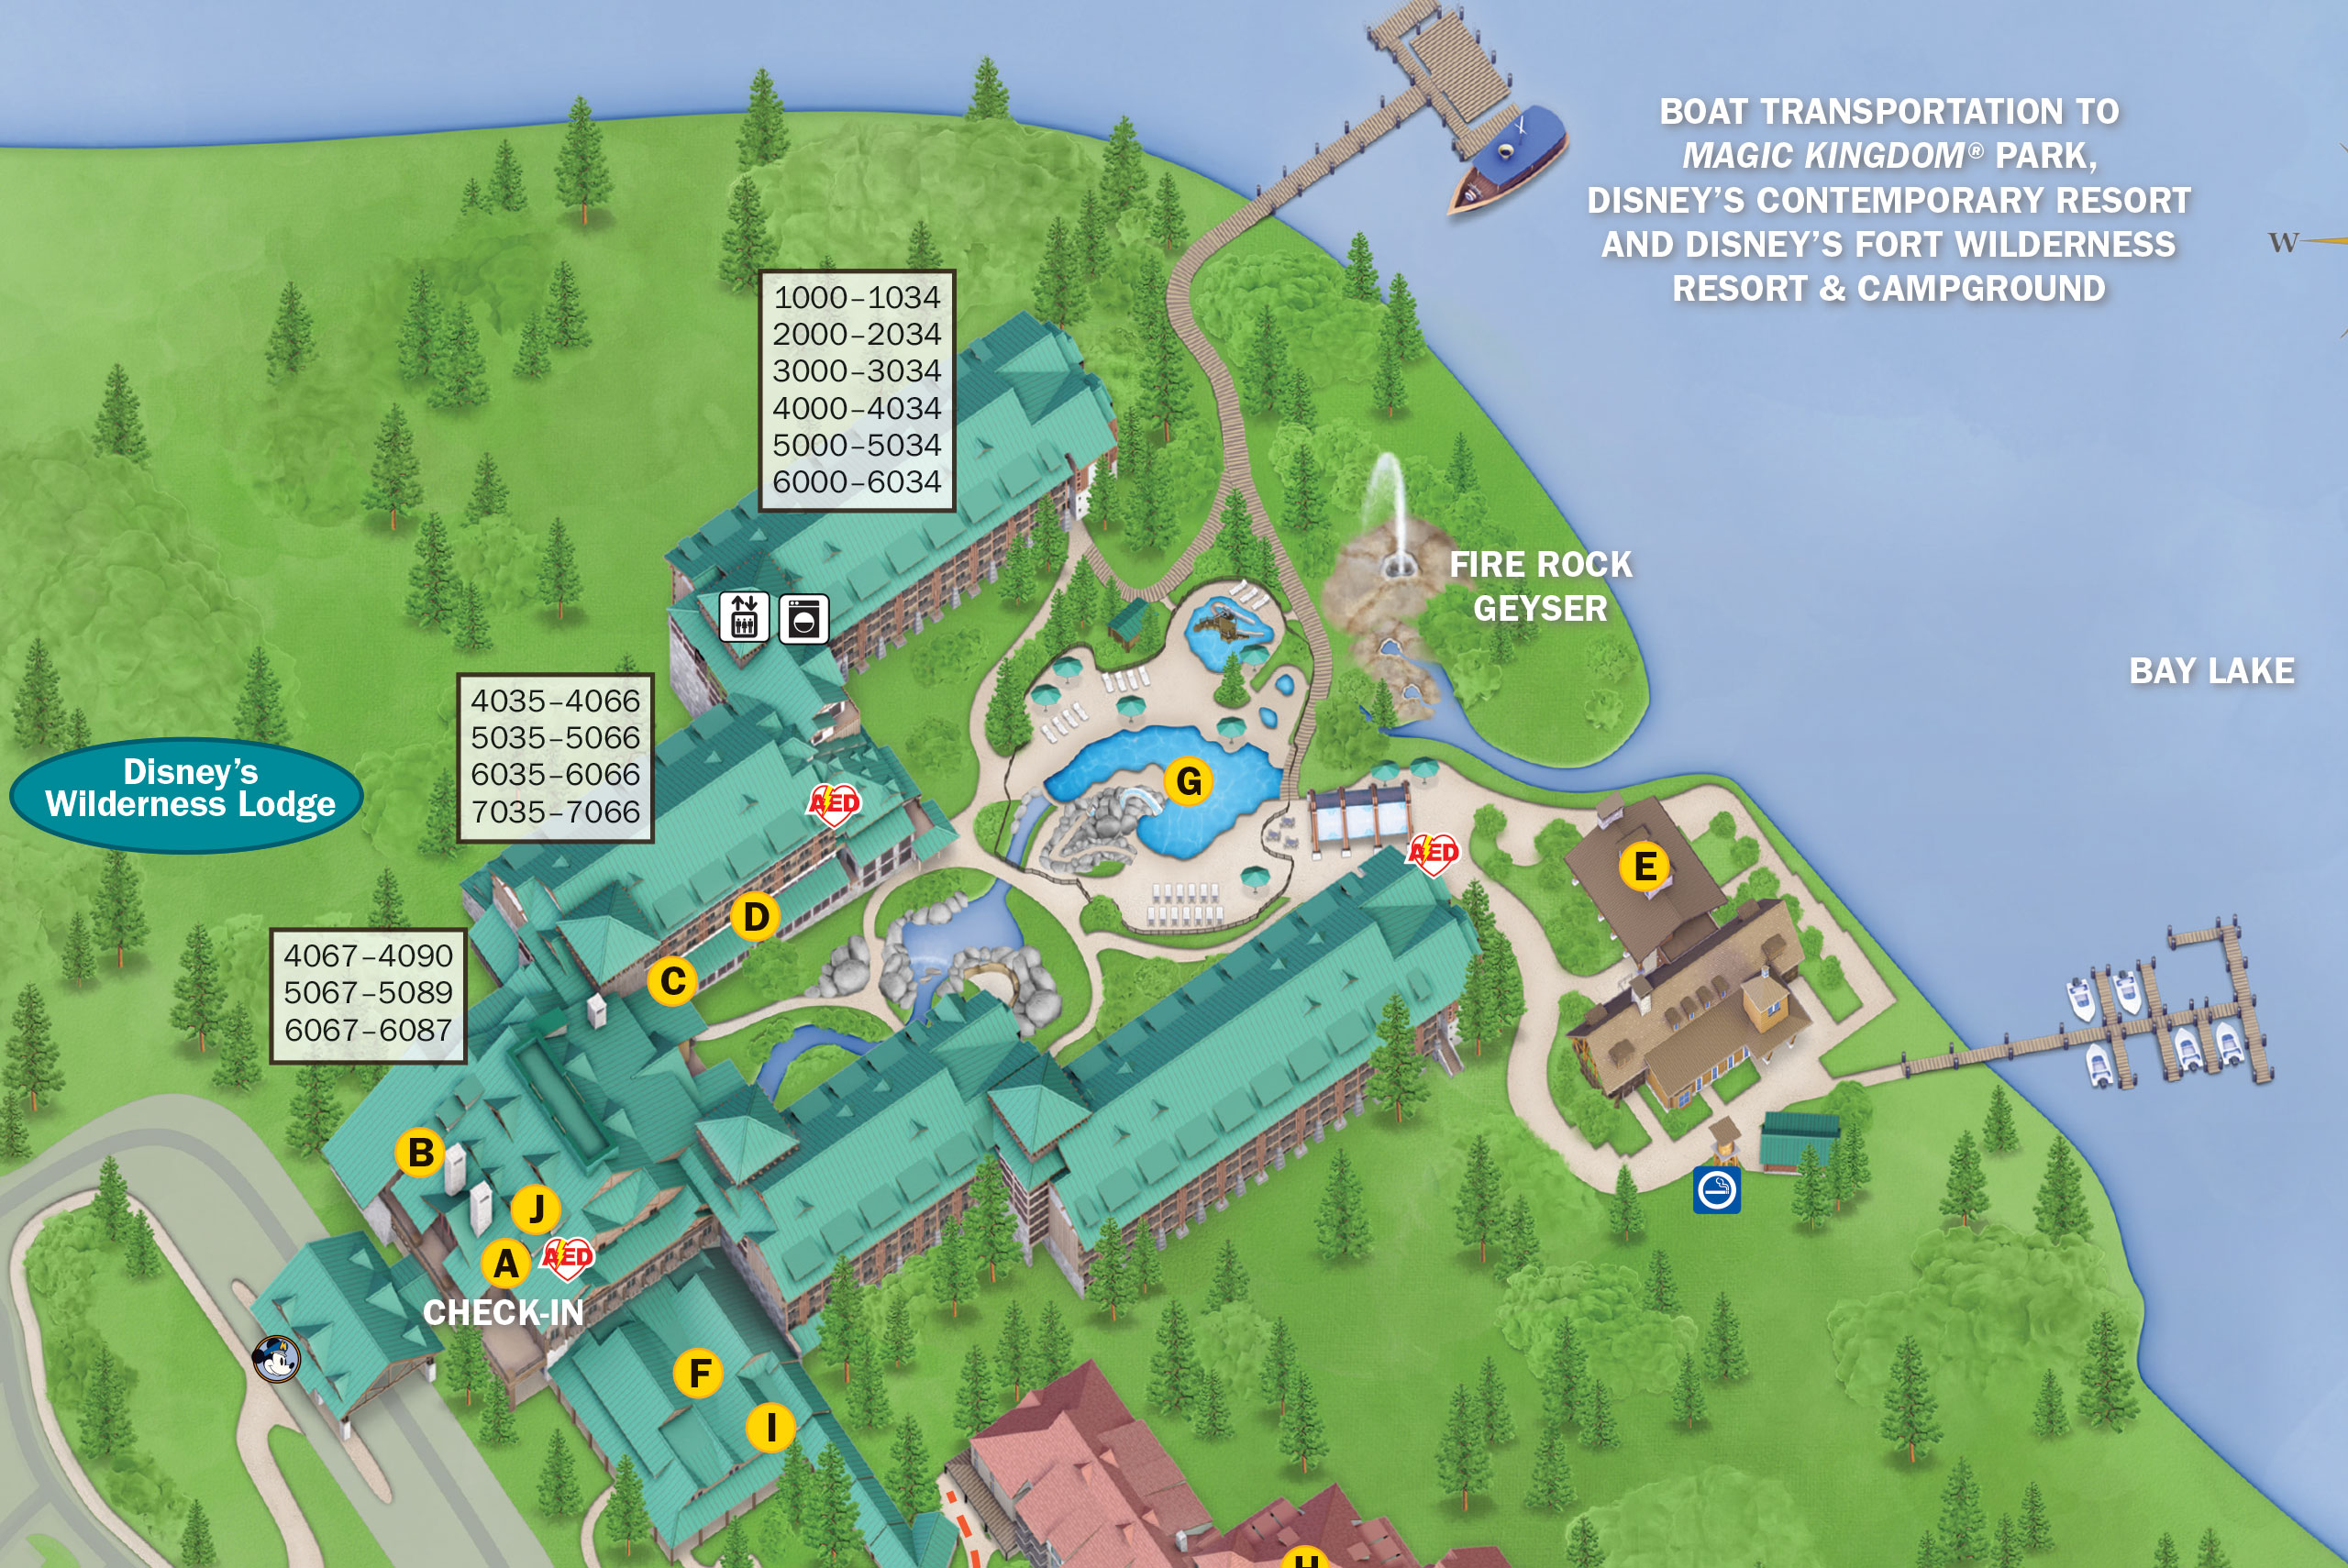 Geyser Point Bar and Grill is at location E on the map